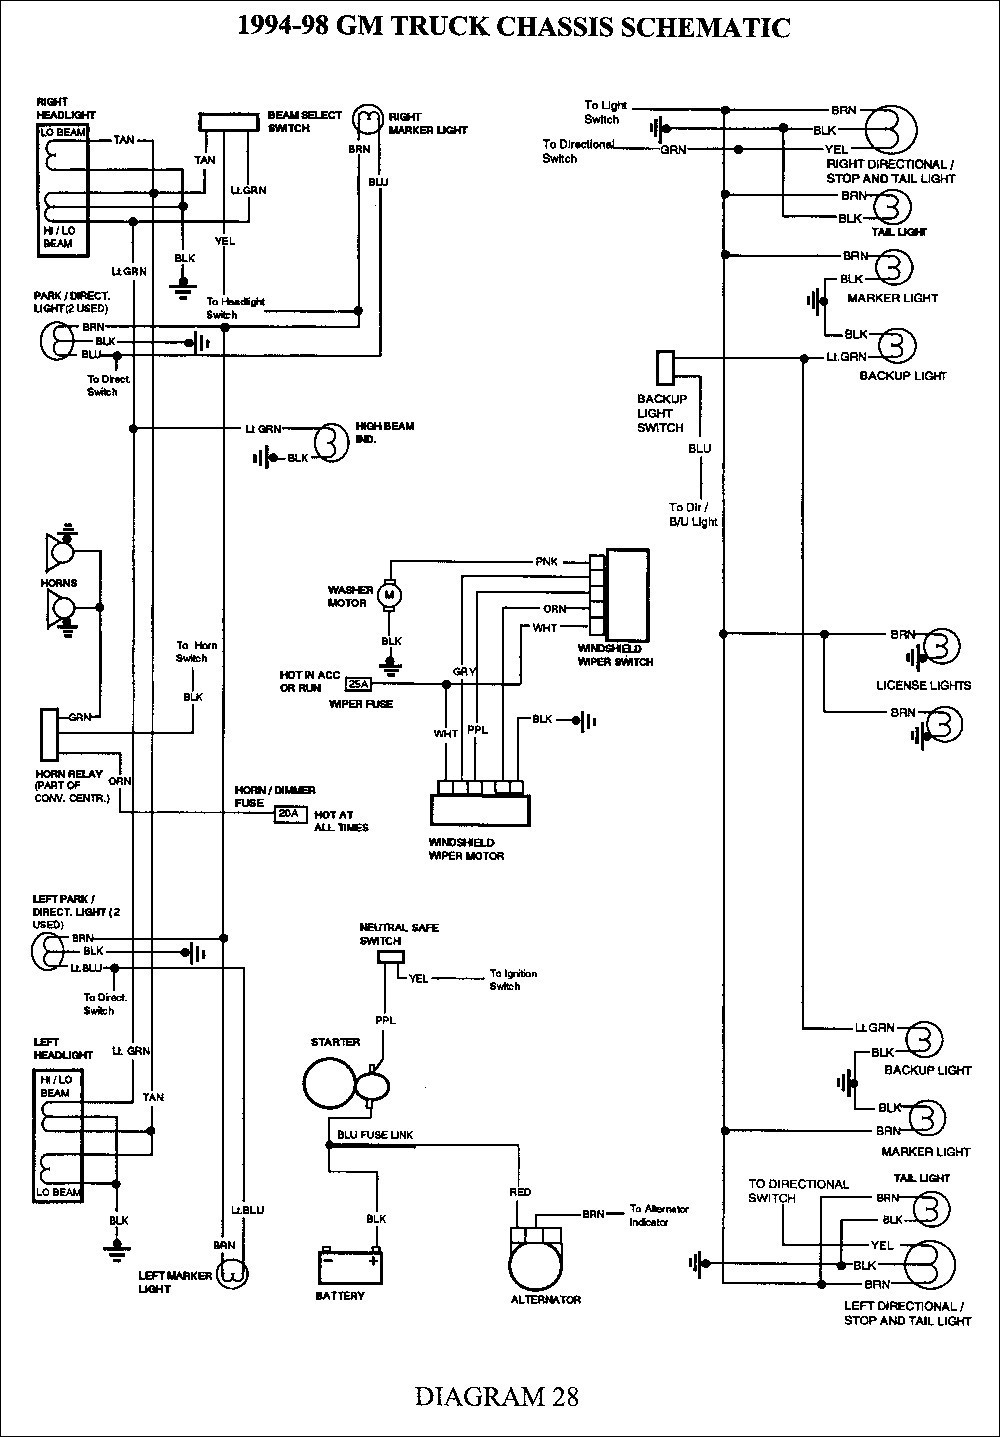 medium resolution of wiring diagrams for 2008 chevy c4500 free download wiring diagram 2008 chevrolet c4500 wiring diagrams wiring